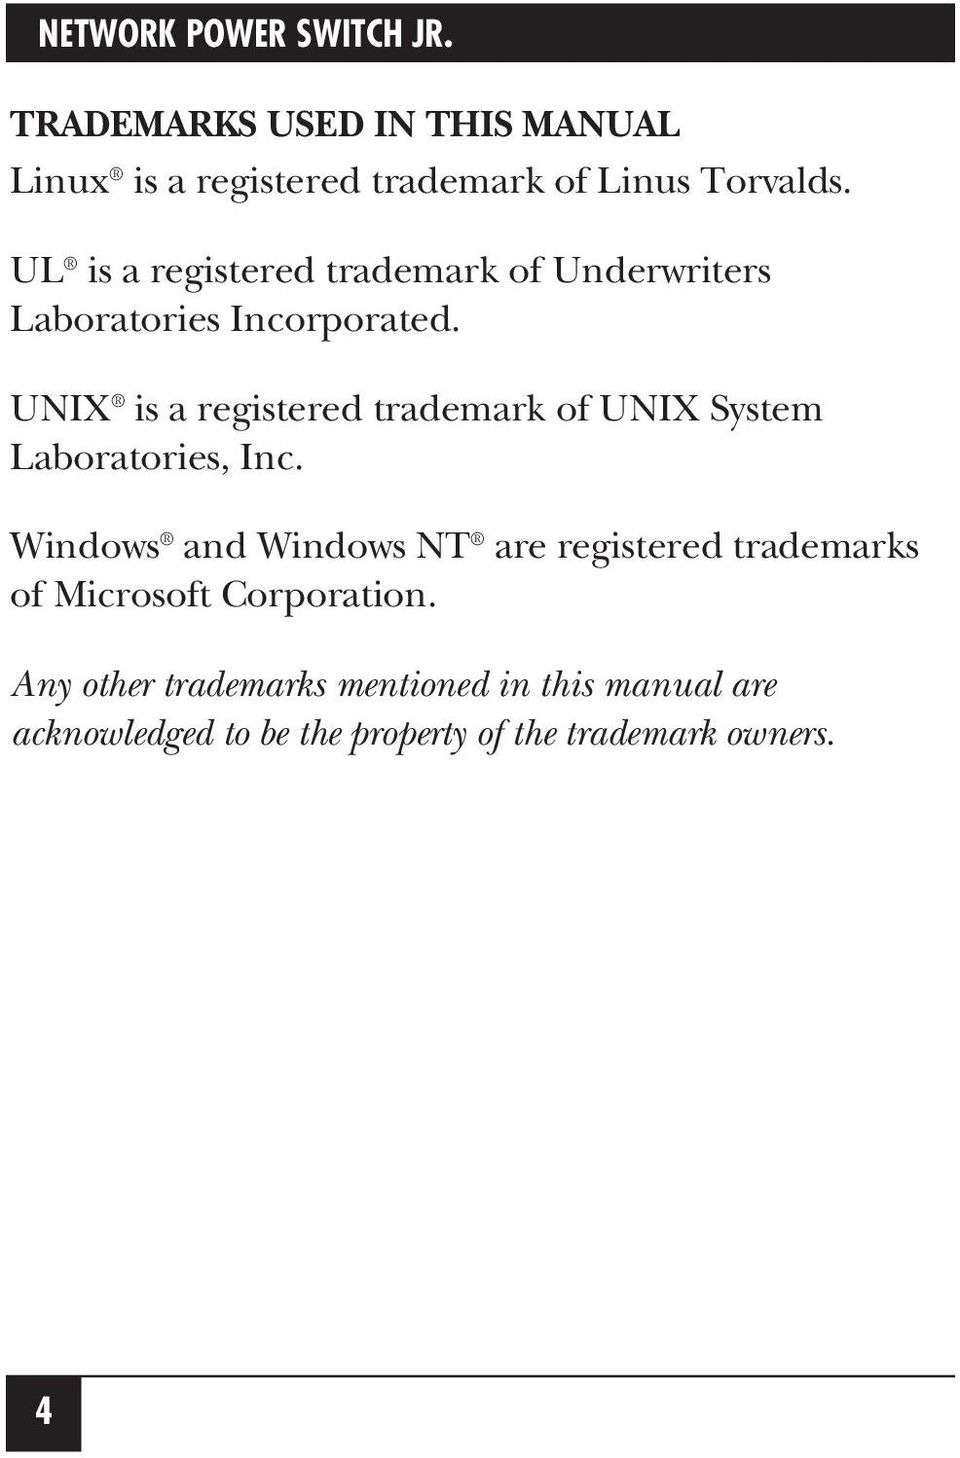 UNIX is a registered trademark of UNIX System Laboratories, Inc.